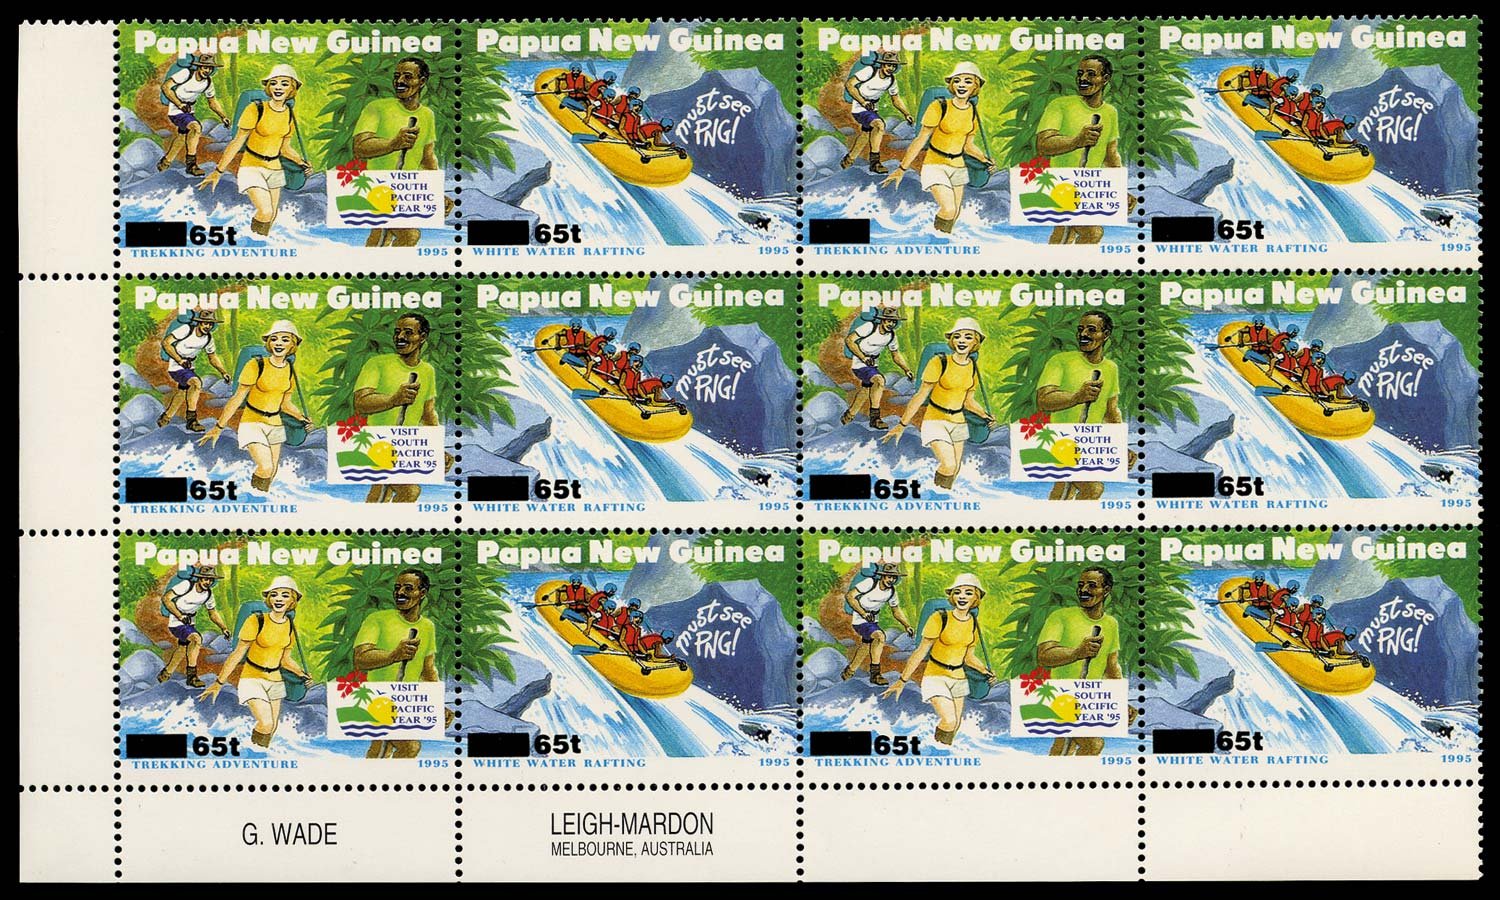 PAPUA NEW GUINEA 1995  SG751a Mint